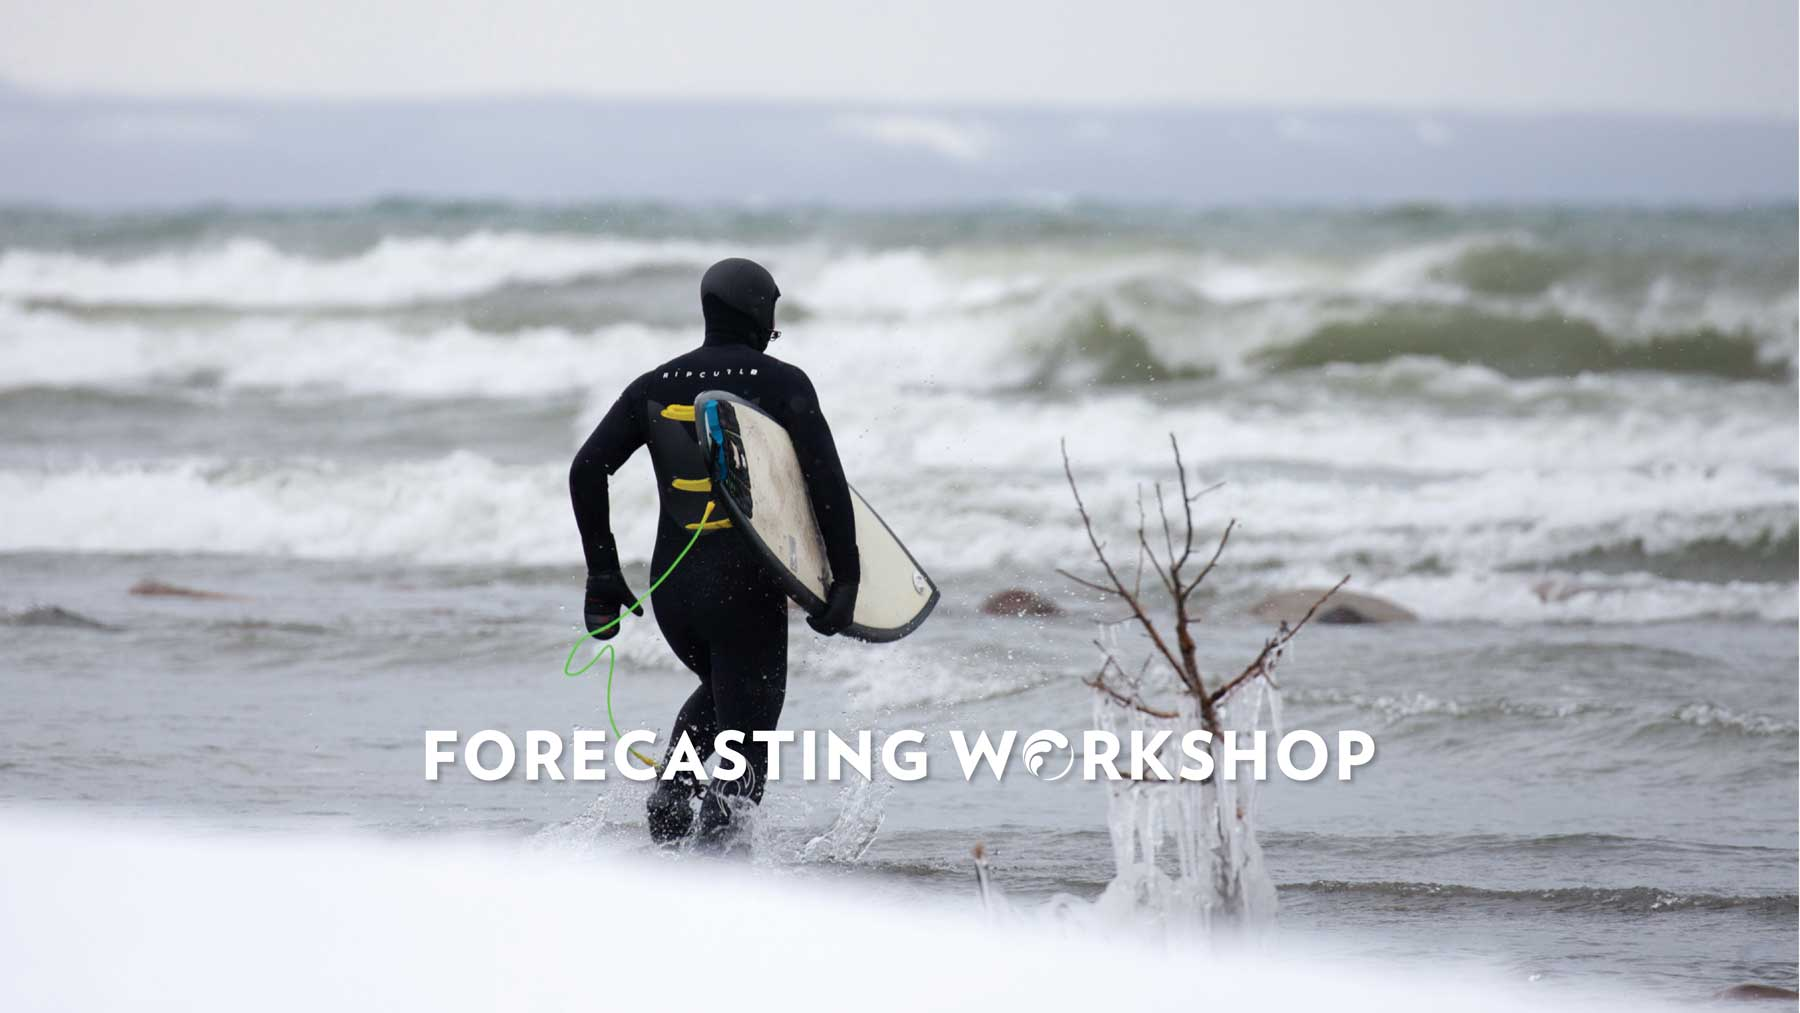 Wave Forecasting Workshop Great Lakes Toronto Ontario Surf Surfing Freshwater